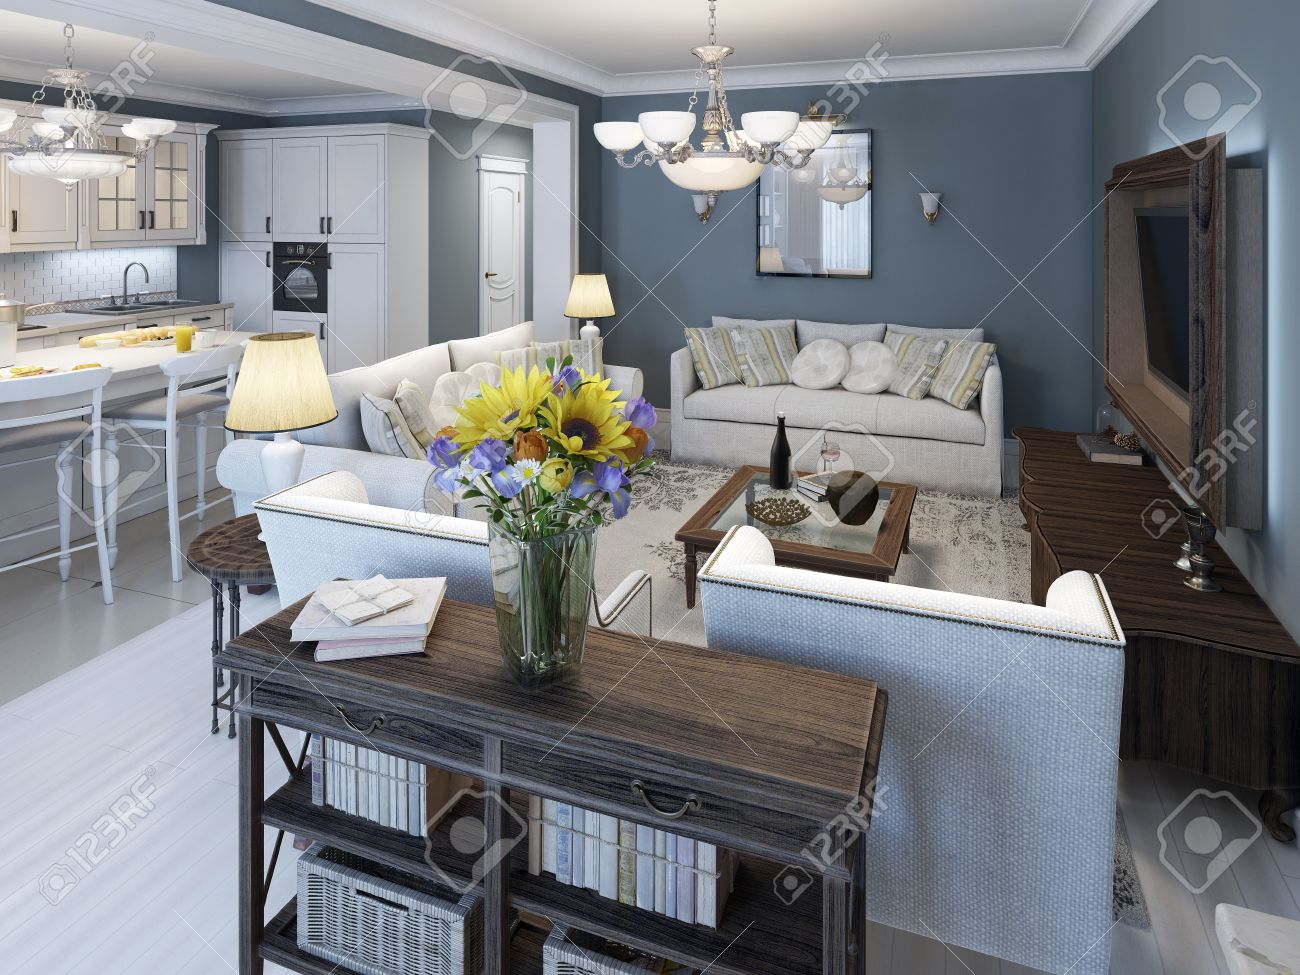 Living room mediterranean style with blue walls. White parquet..